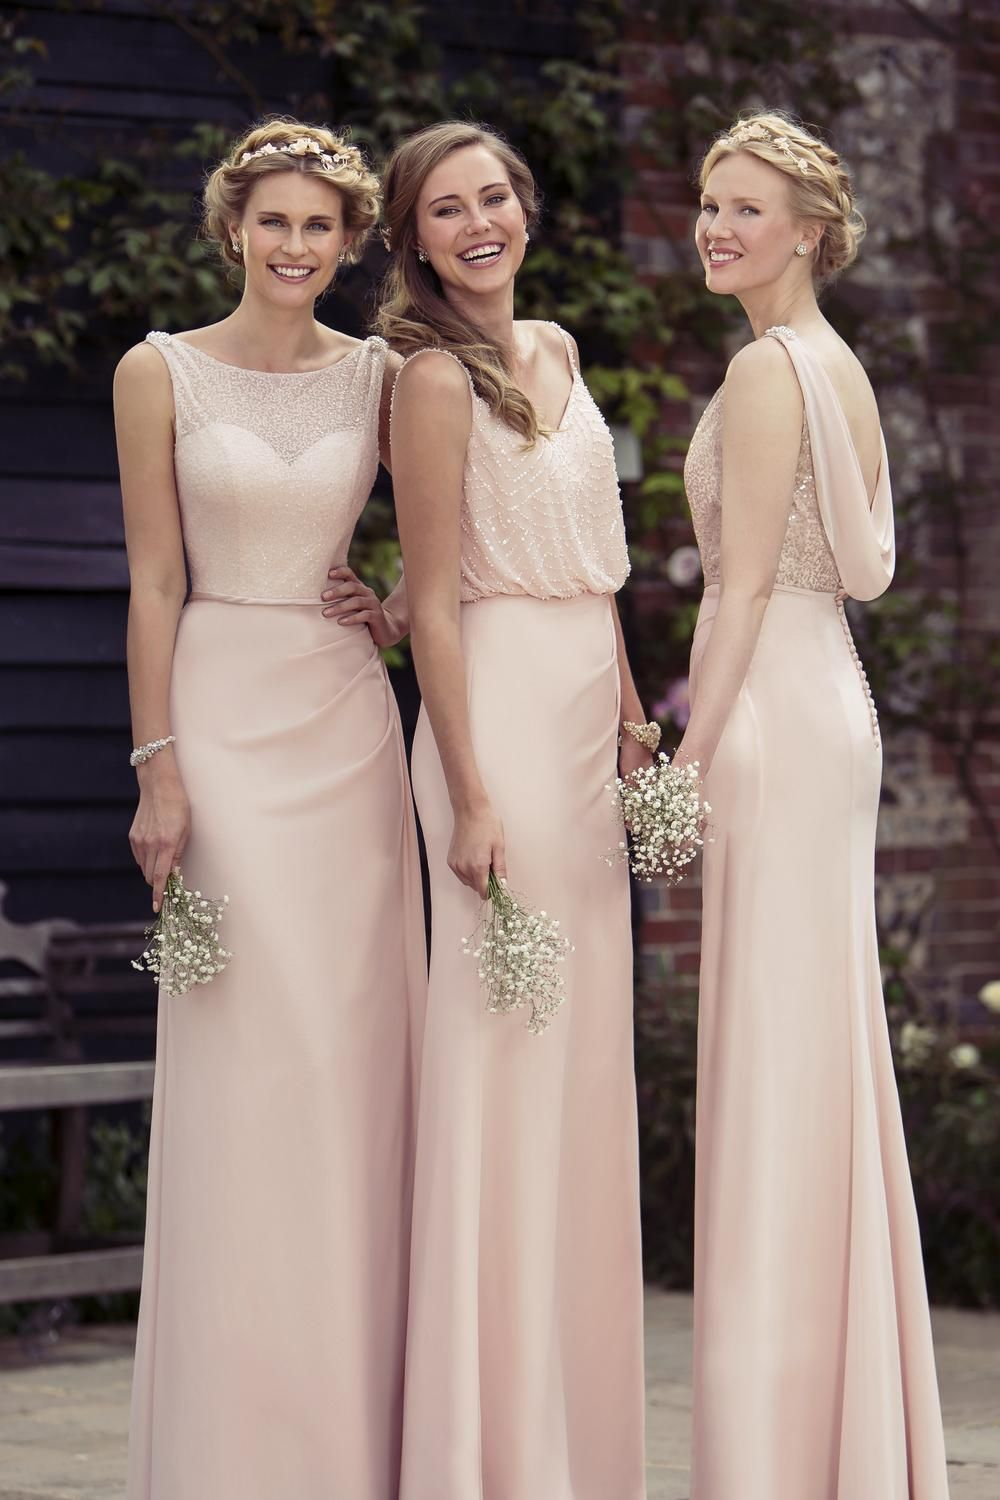 Bridesmaids dresses lori g bridal true bride bridesmaid dresses ombrellifo Gallery